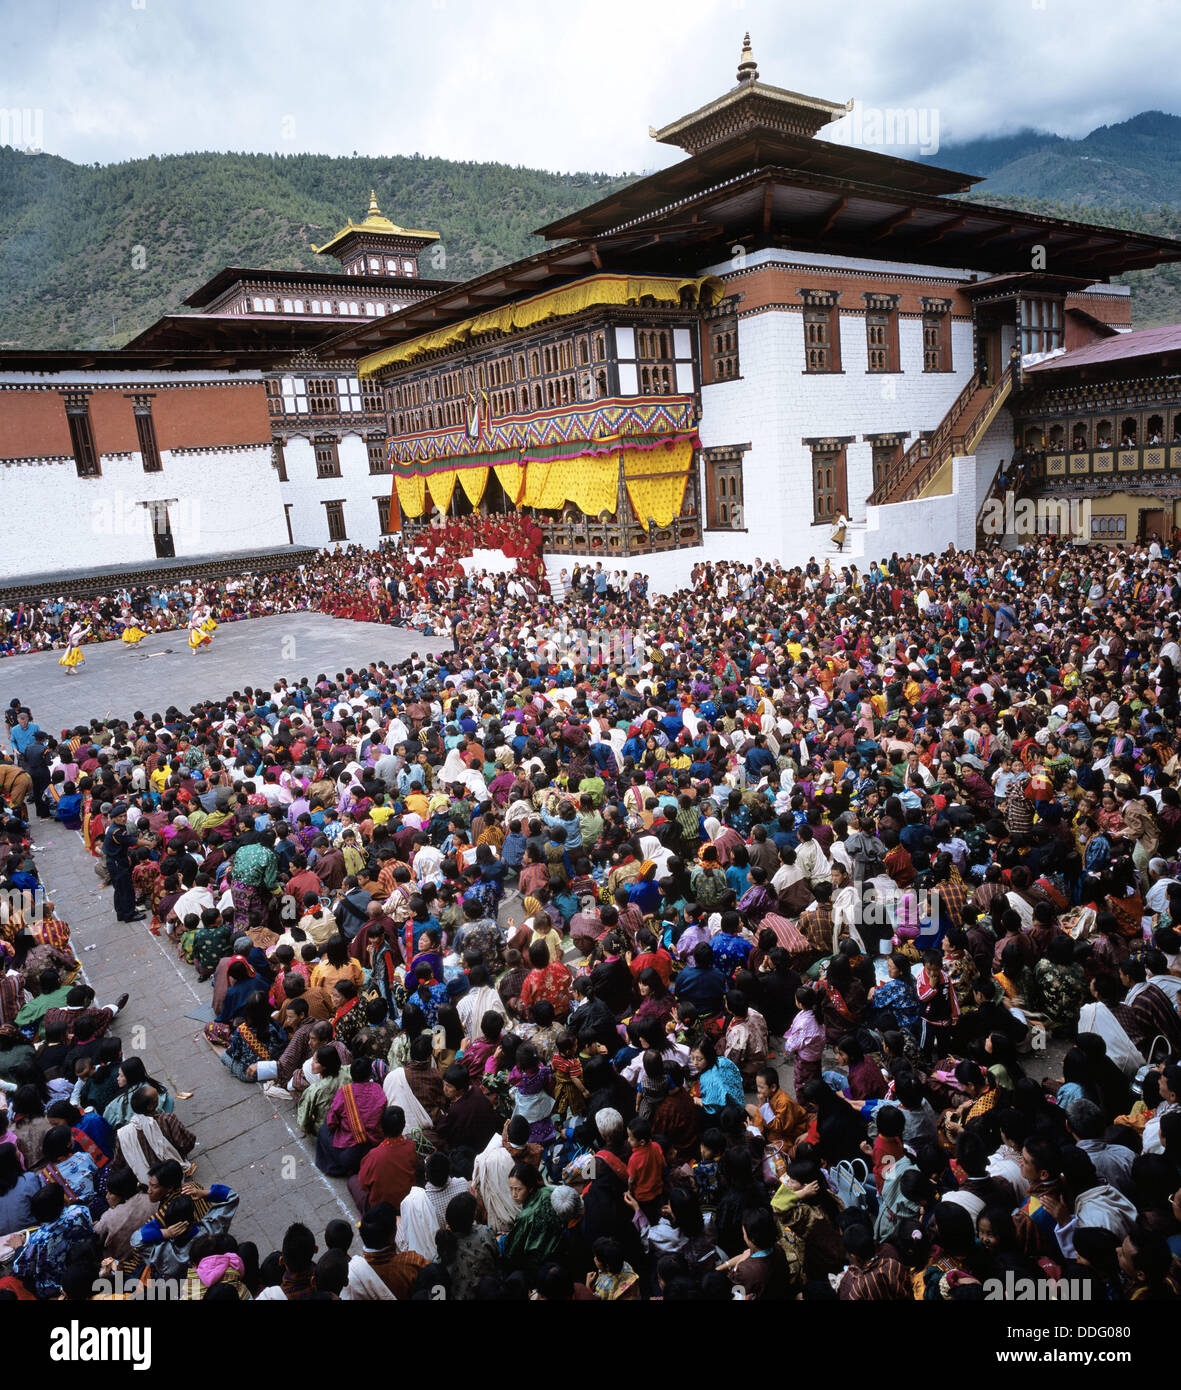 Bhutan. Thimphu Tsechu: pilgrims and believers gather to watch the religious festival in the capital city of Bhutan. - Stock Image